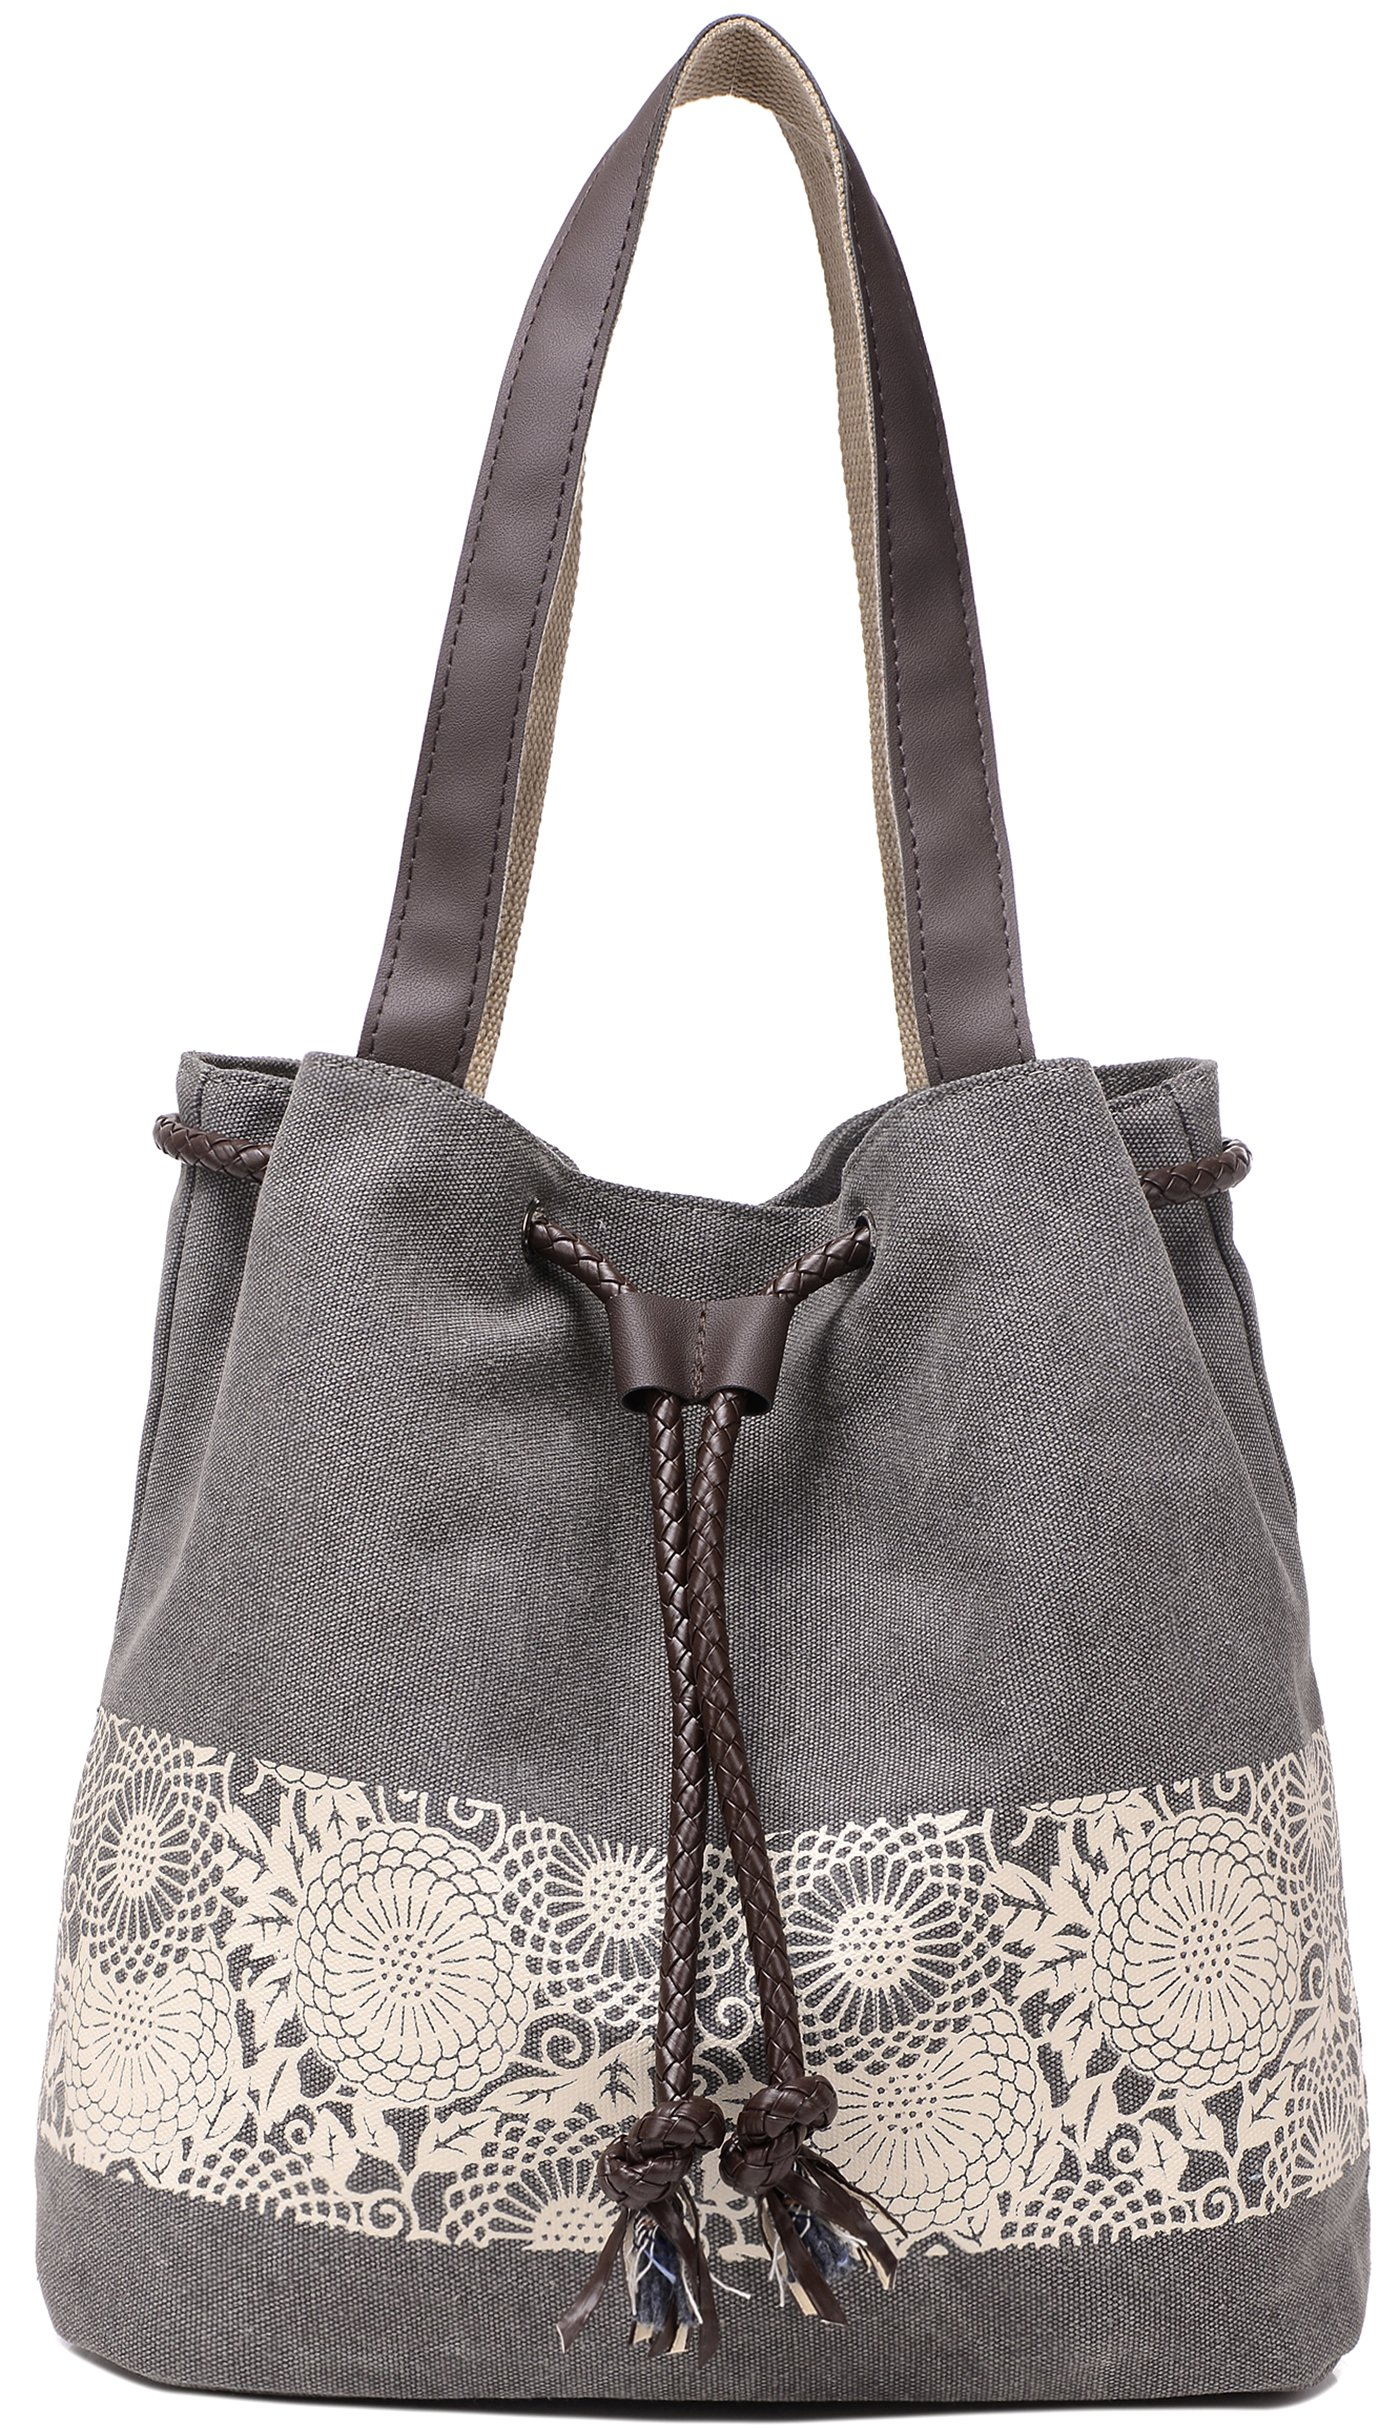 ArcEnCiel Women's Canvas Shoulder Hand Bag Tote Bag (Gray)